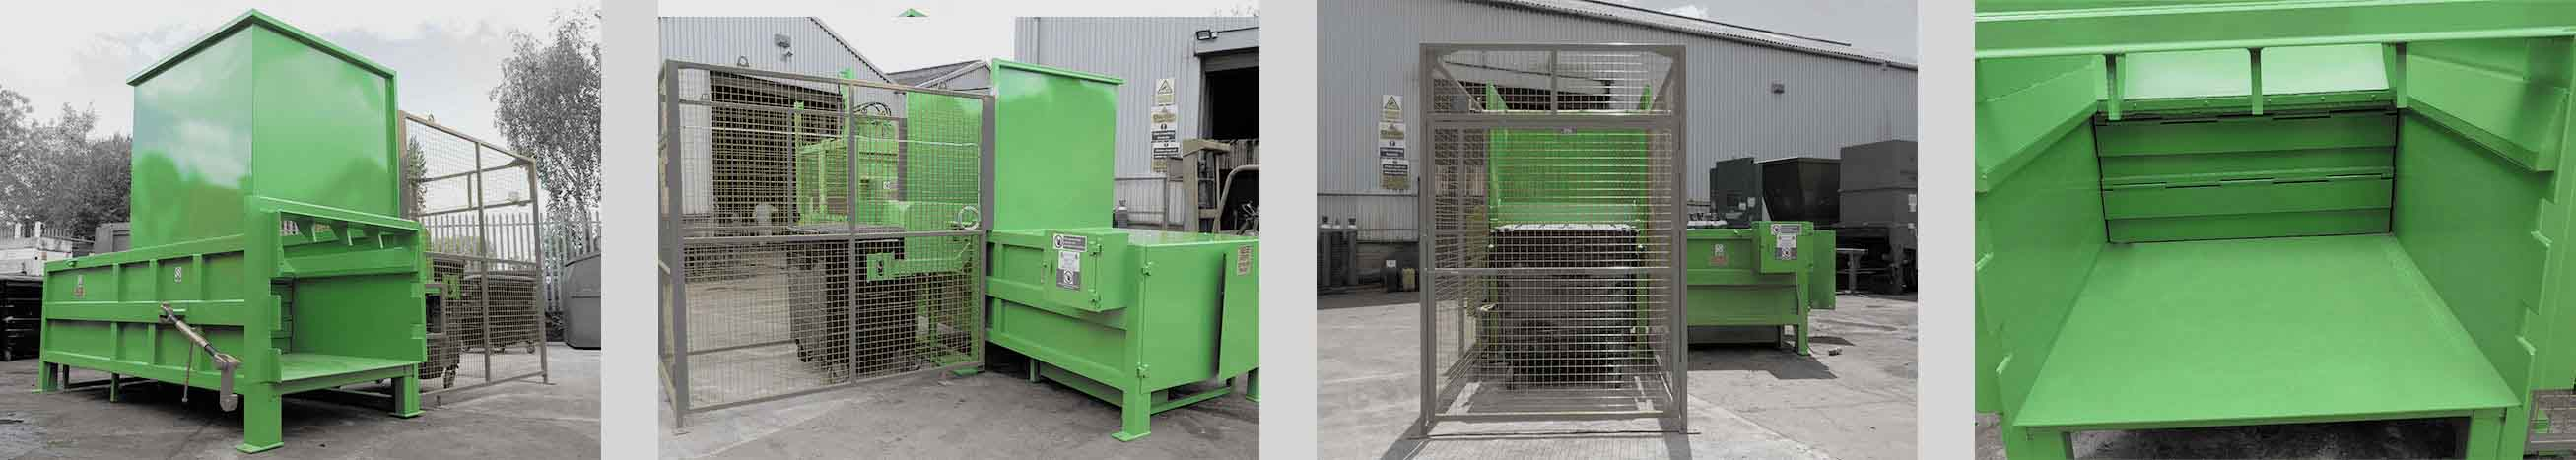 Static Waste Compactor